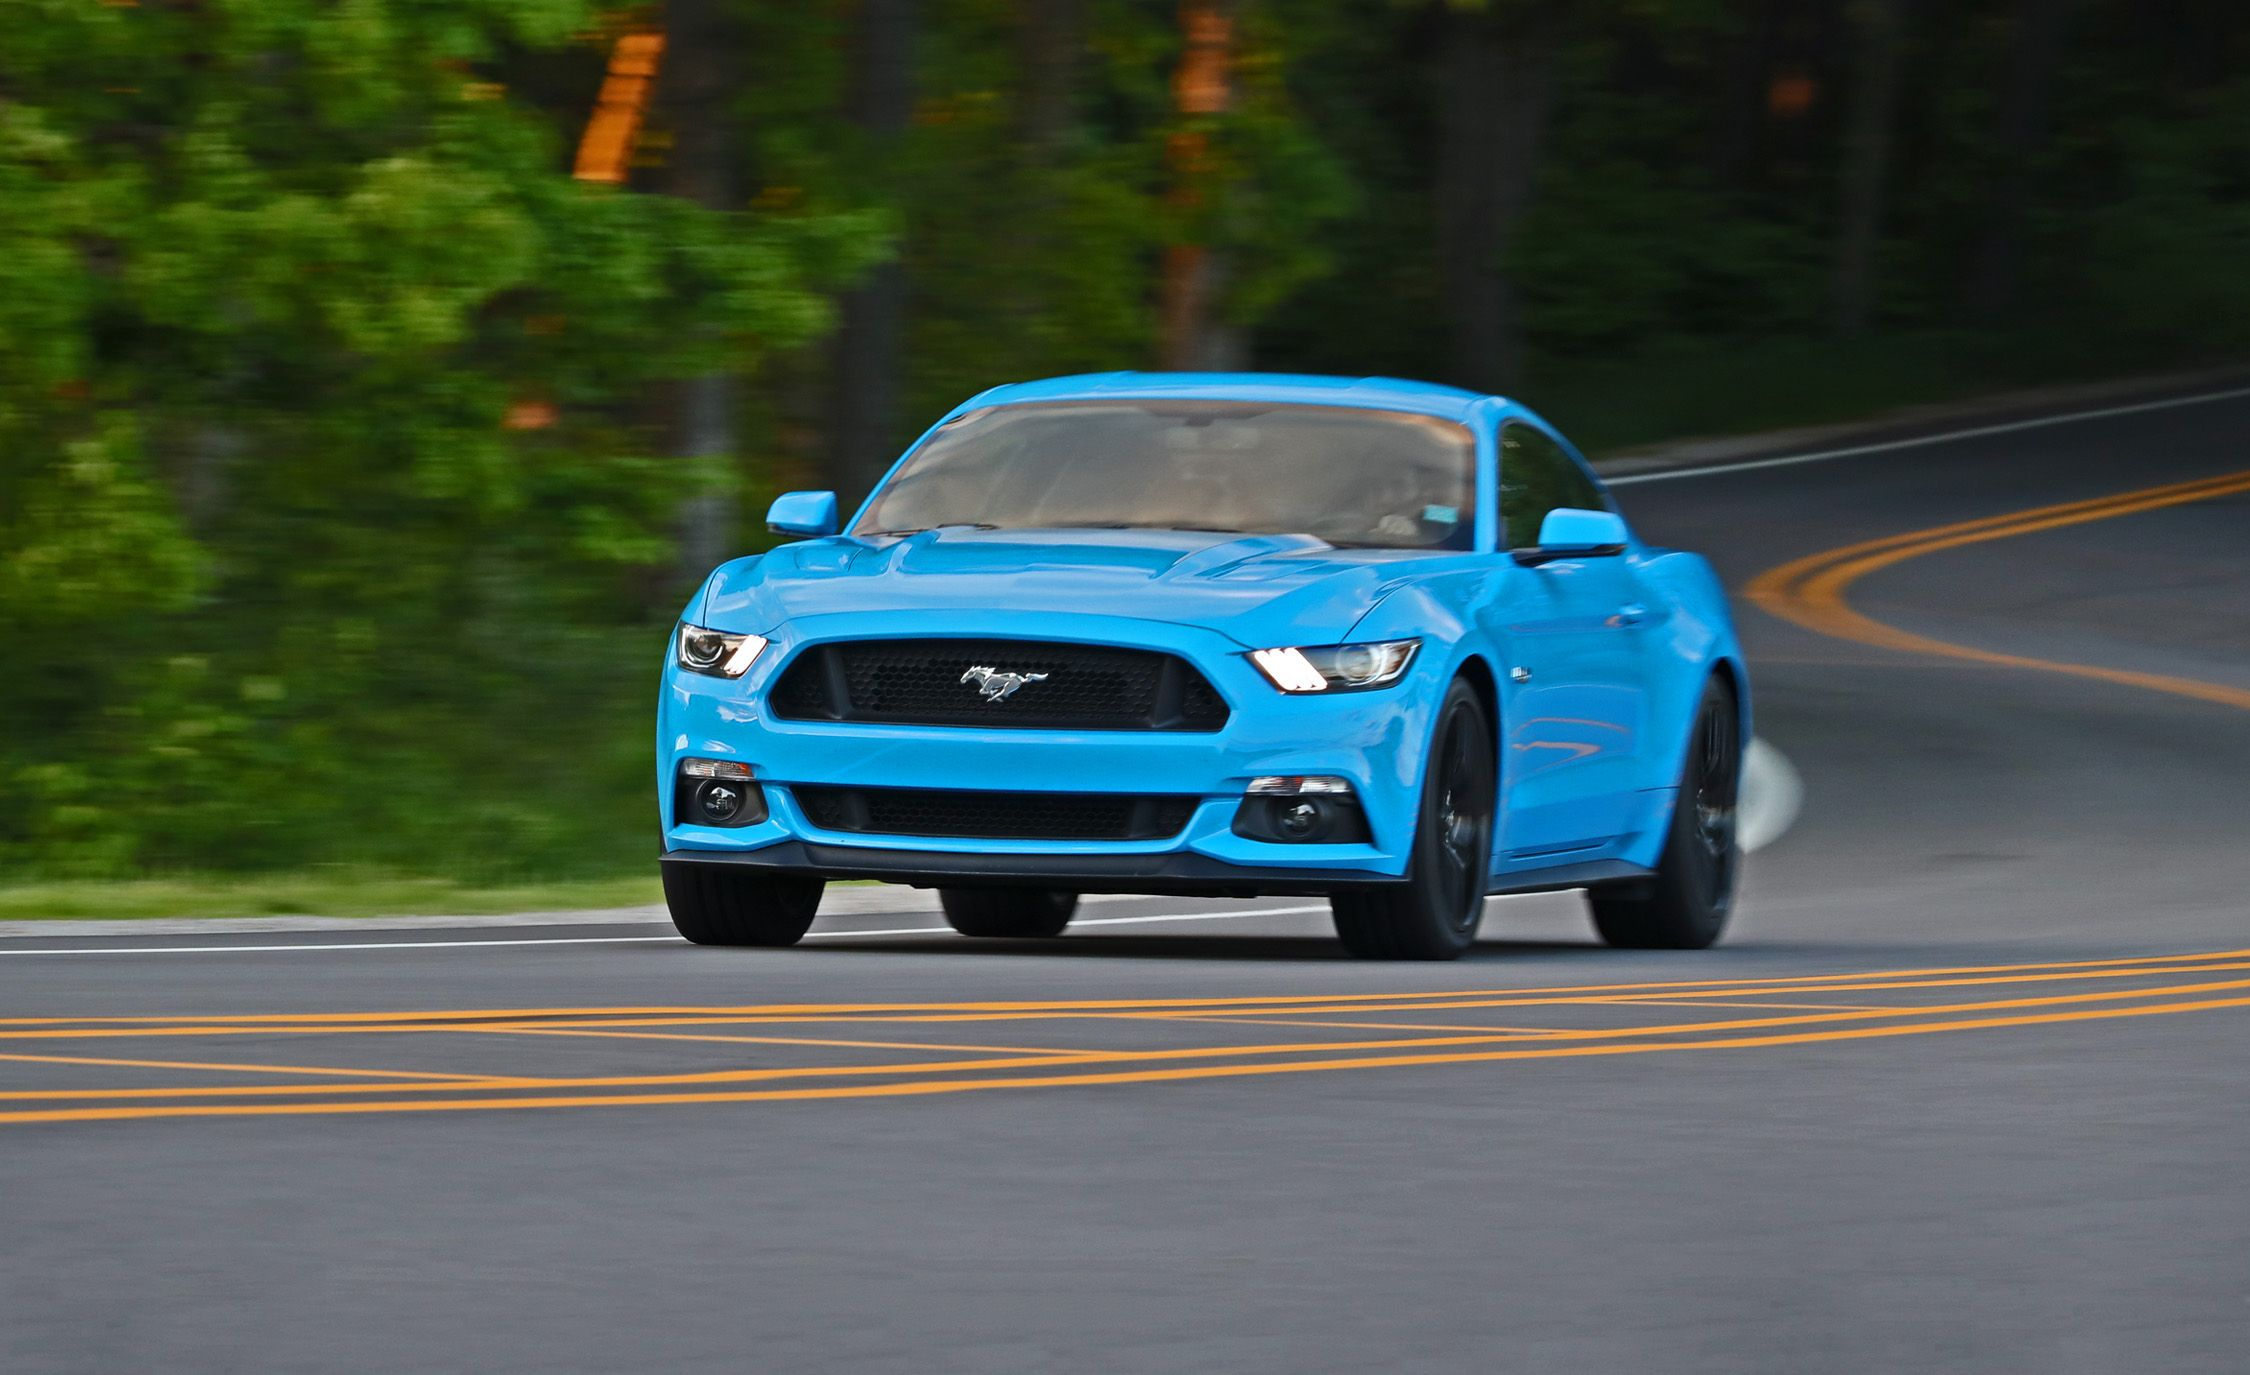 Ford Mustang Reviews Ford Mustang Price s and Specs